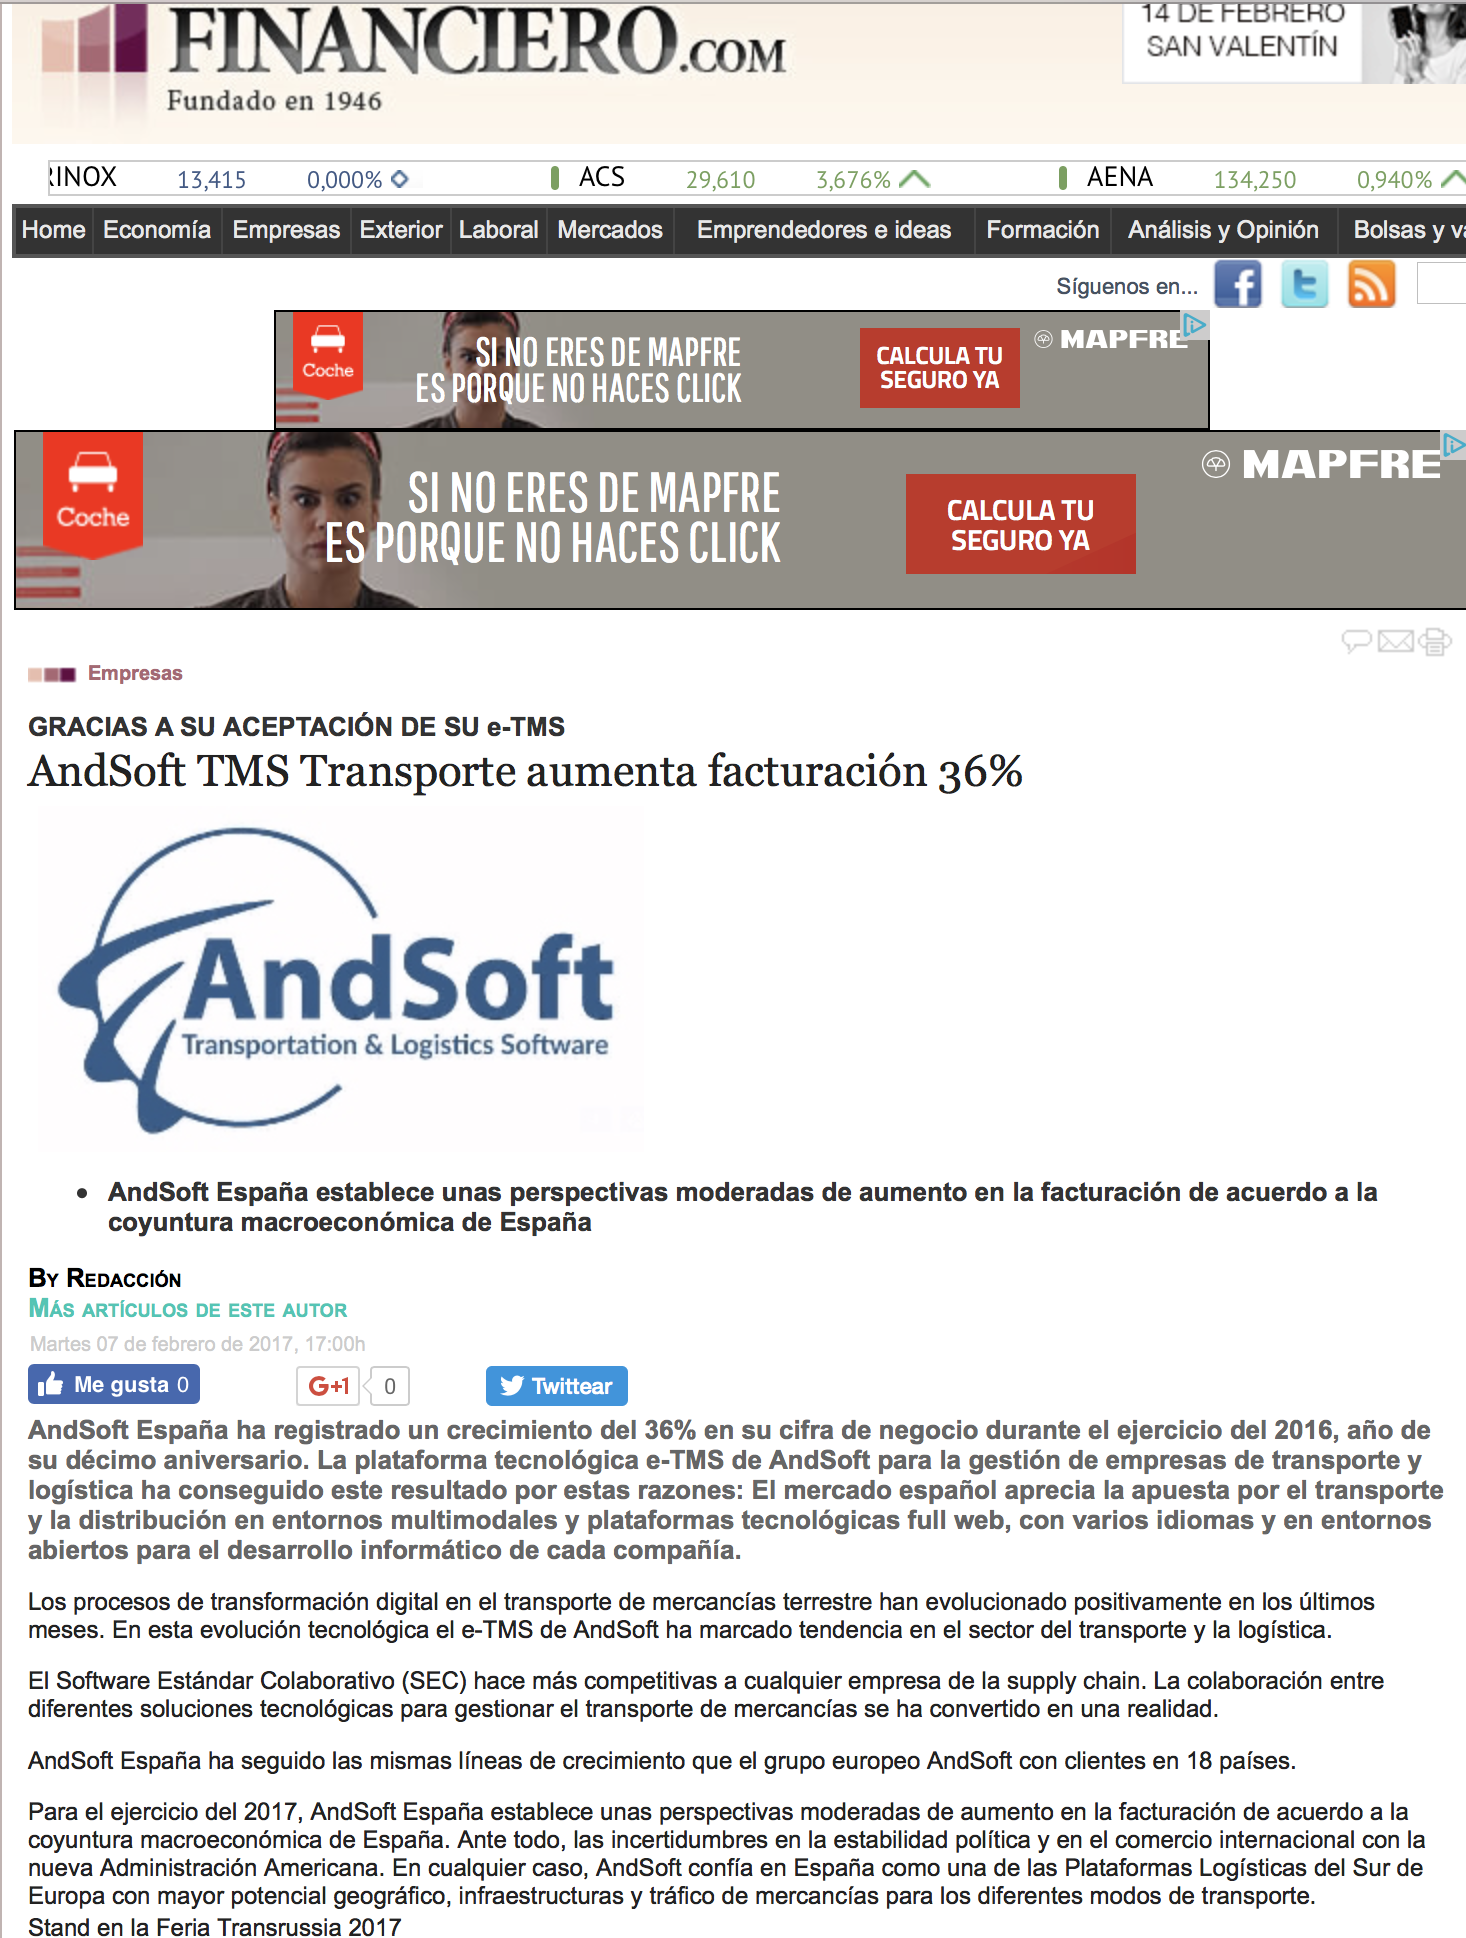 andsoft-mundo-financiero